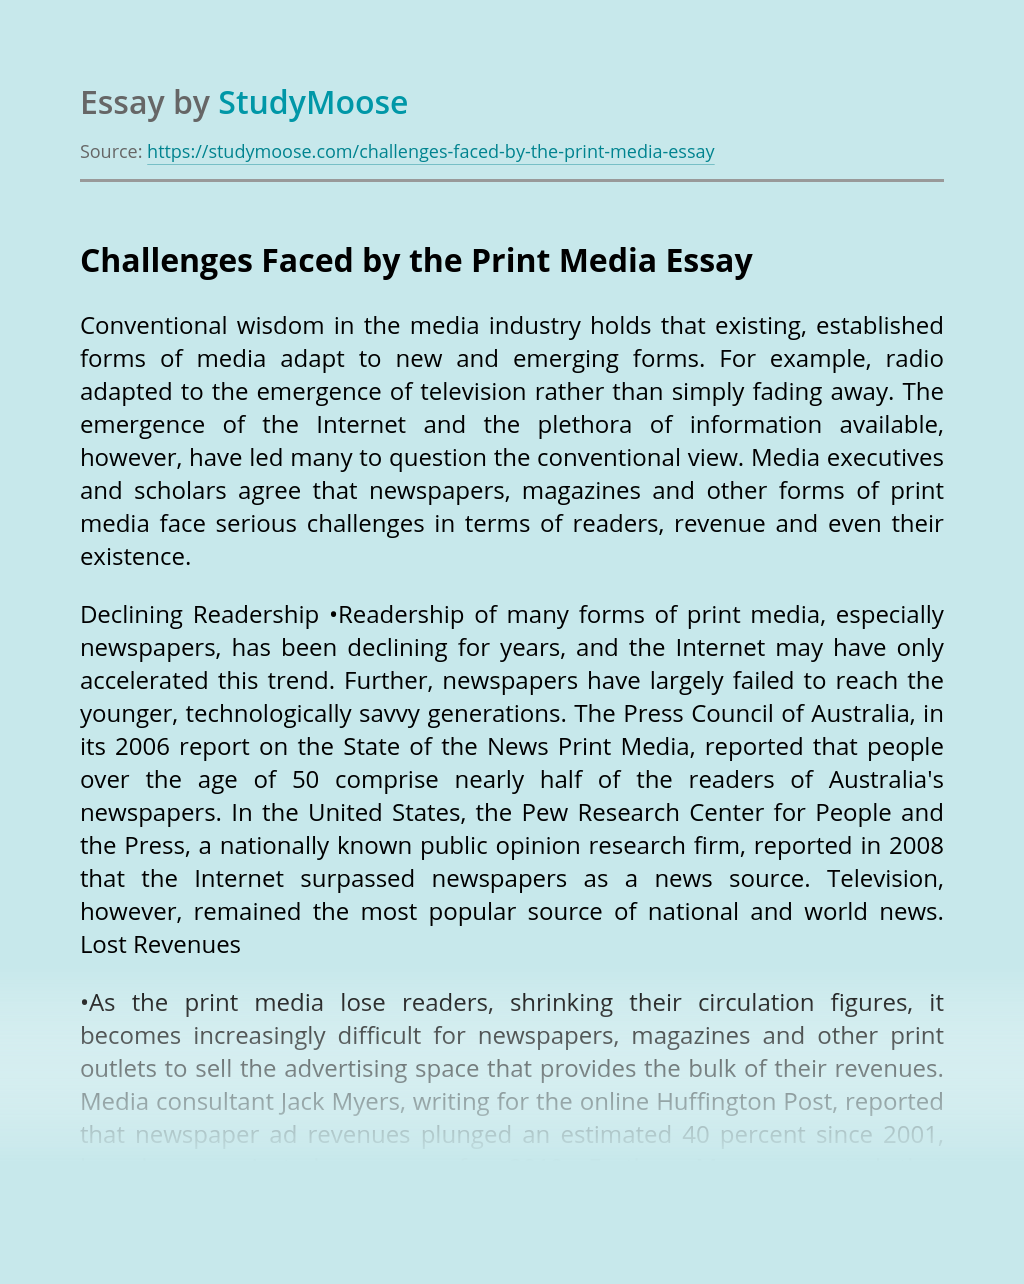 Challenges Faced by the Print Media